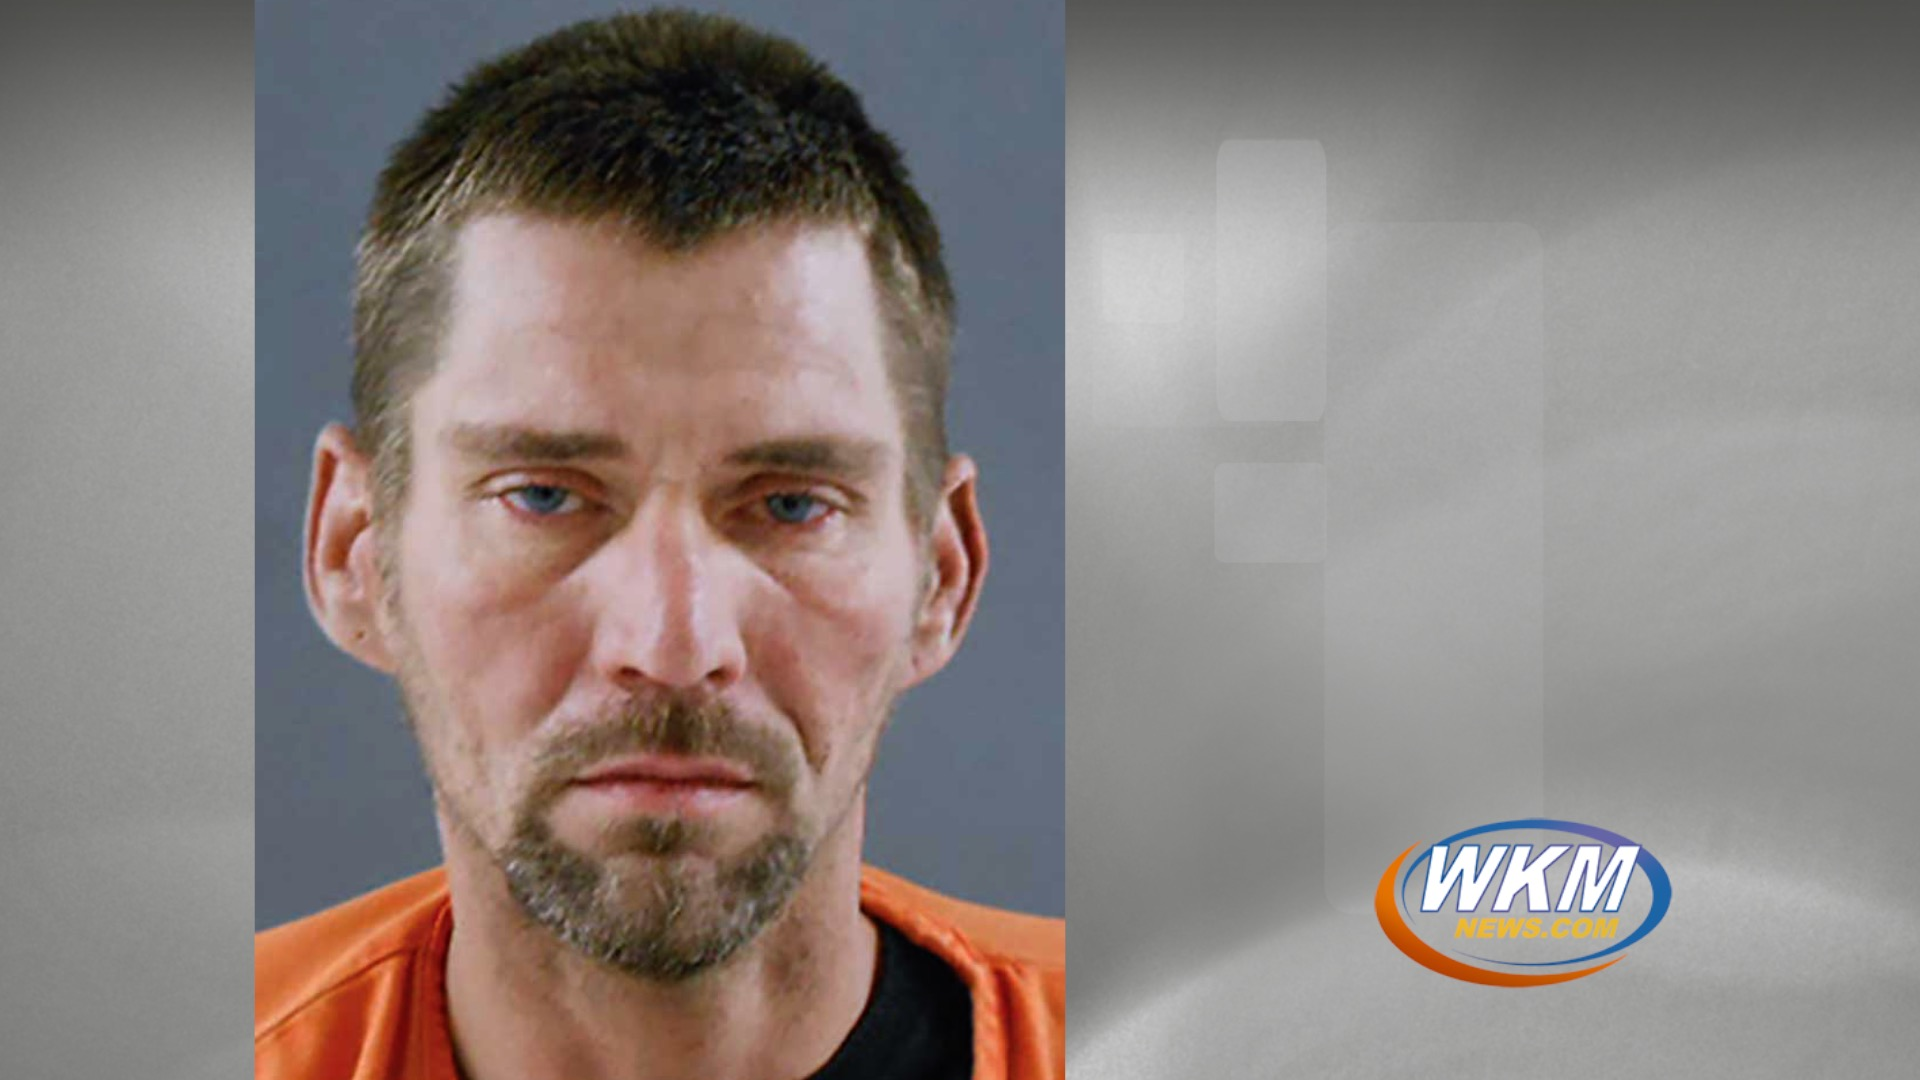 Man Arrested for Auto Theft in Connection to 3-County Vehicle Theft Case